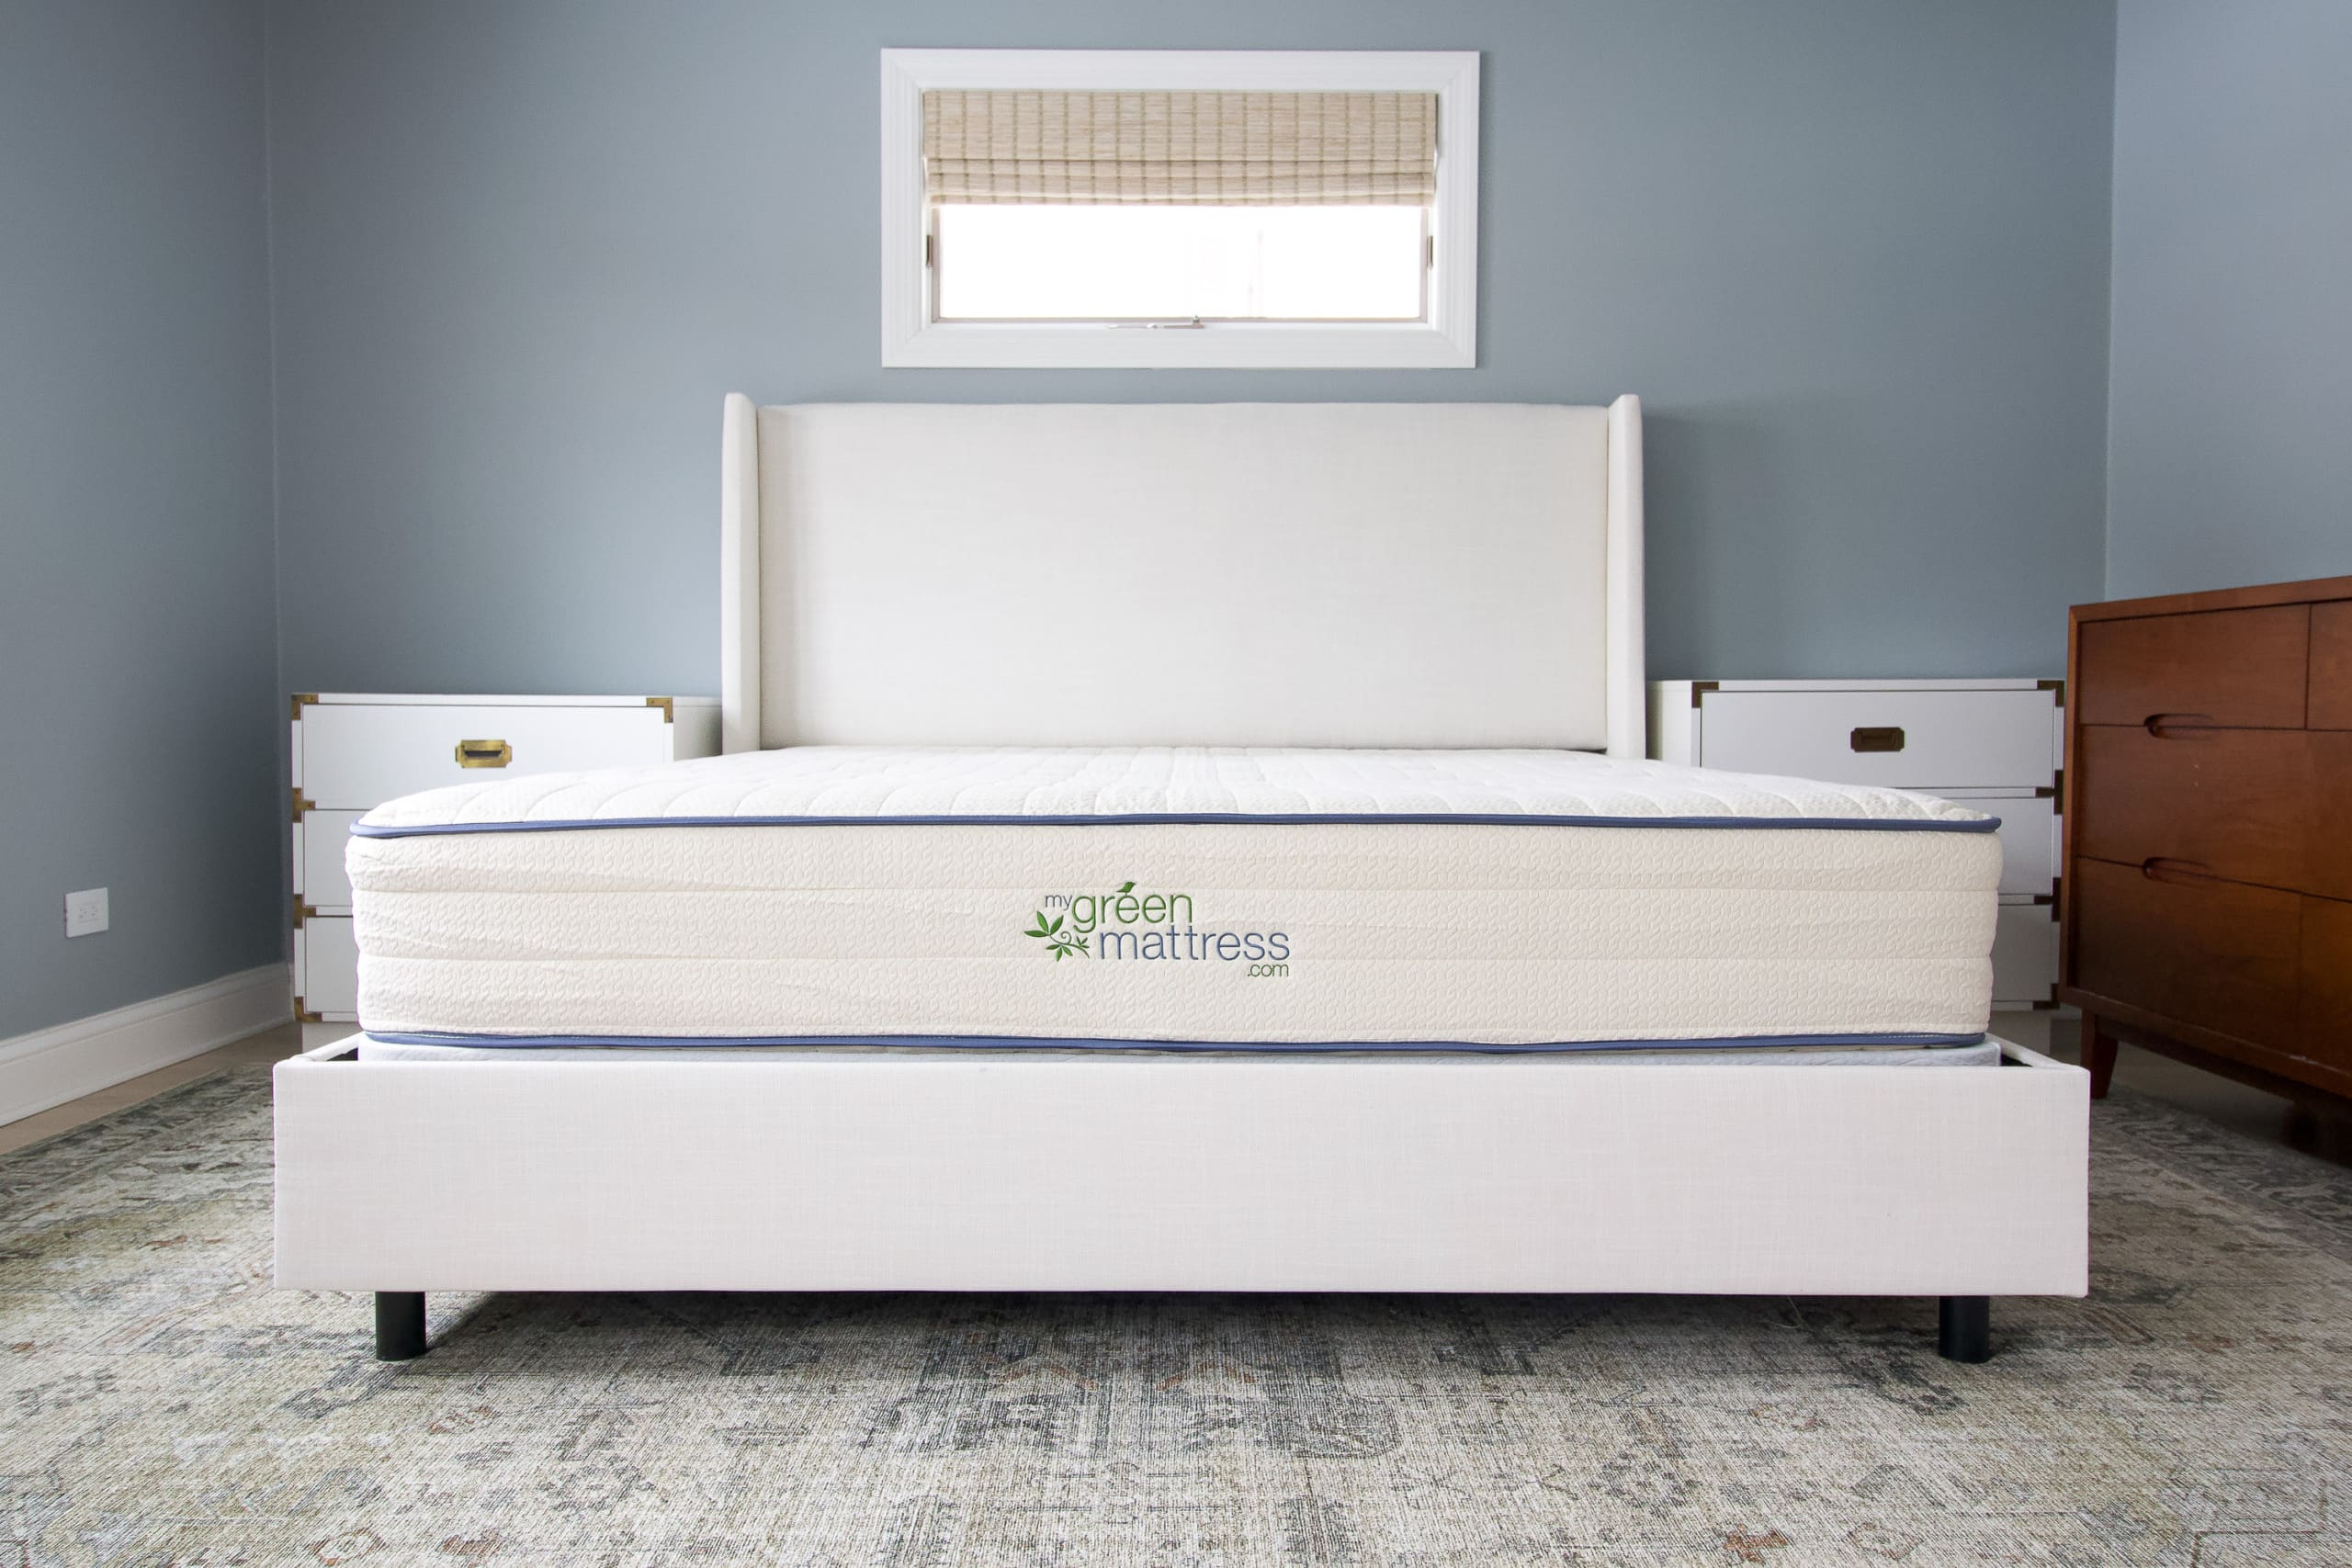 Adding our new king-sized mattress to our master bedroom